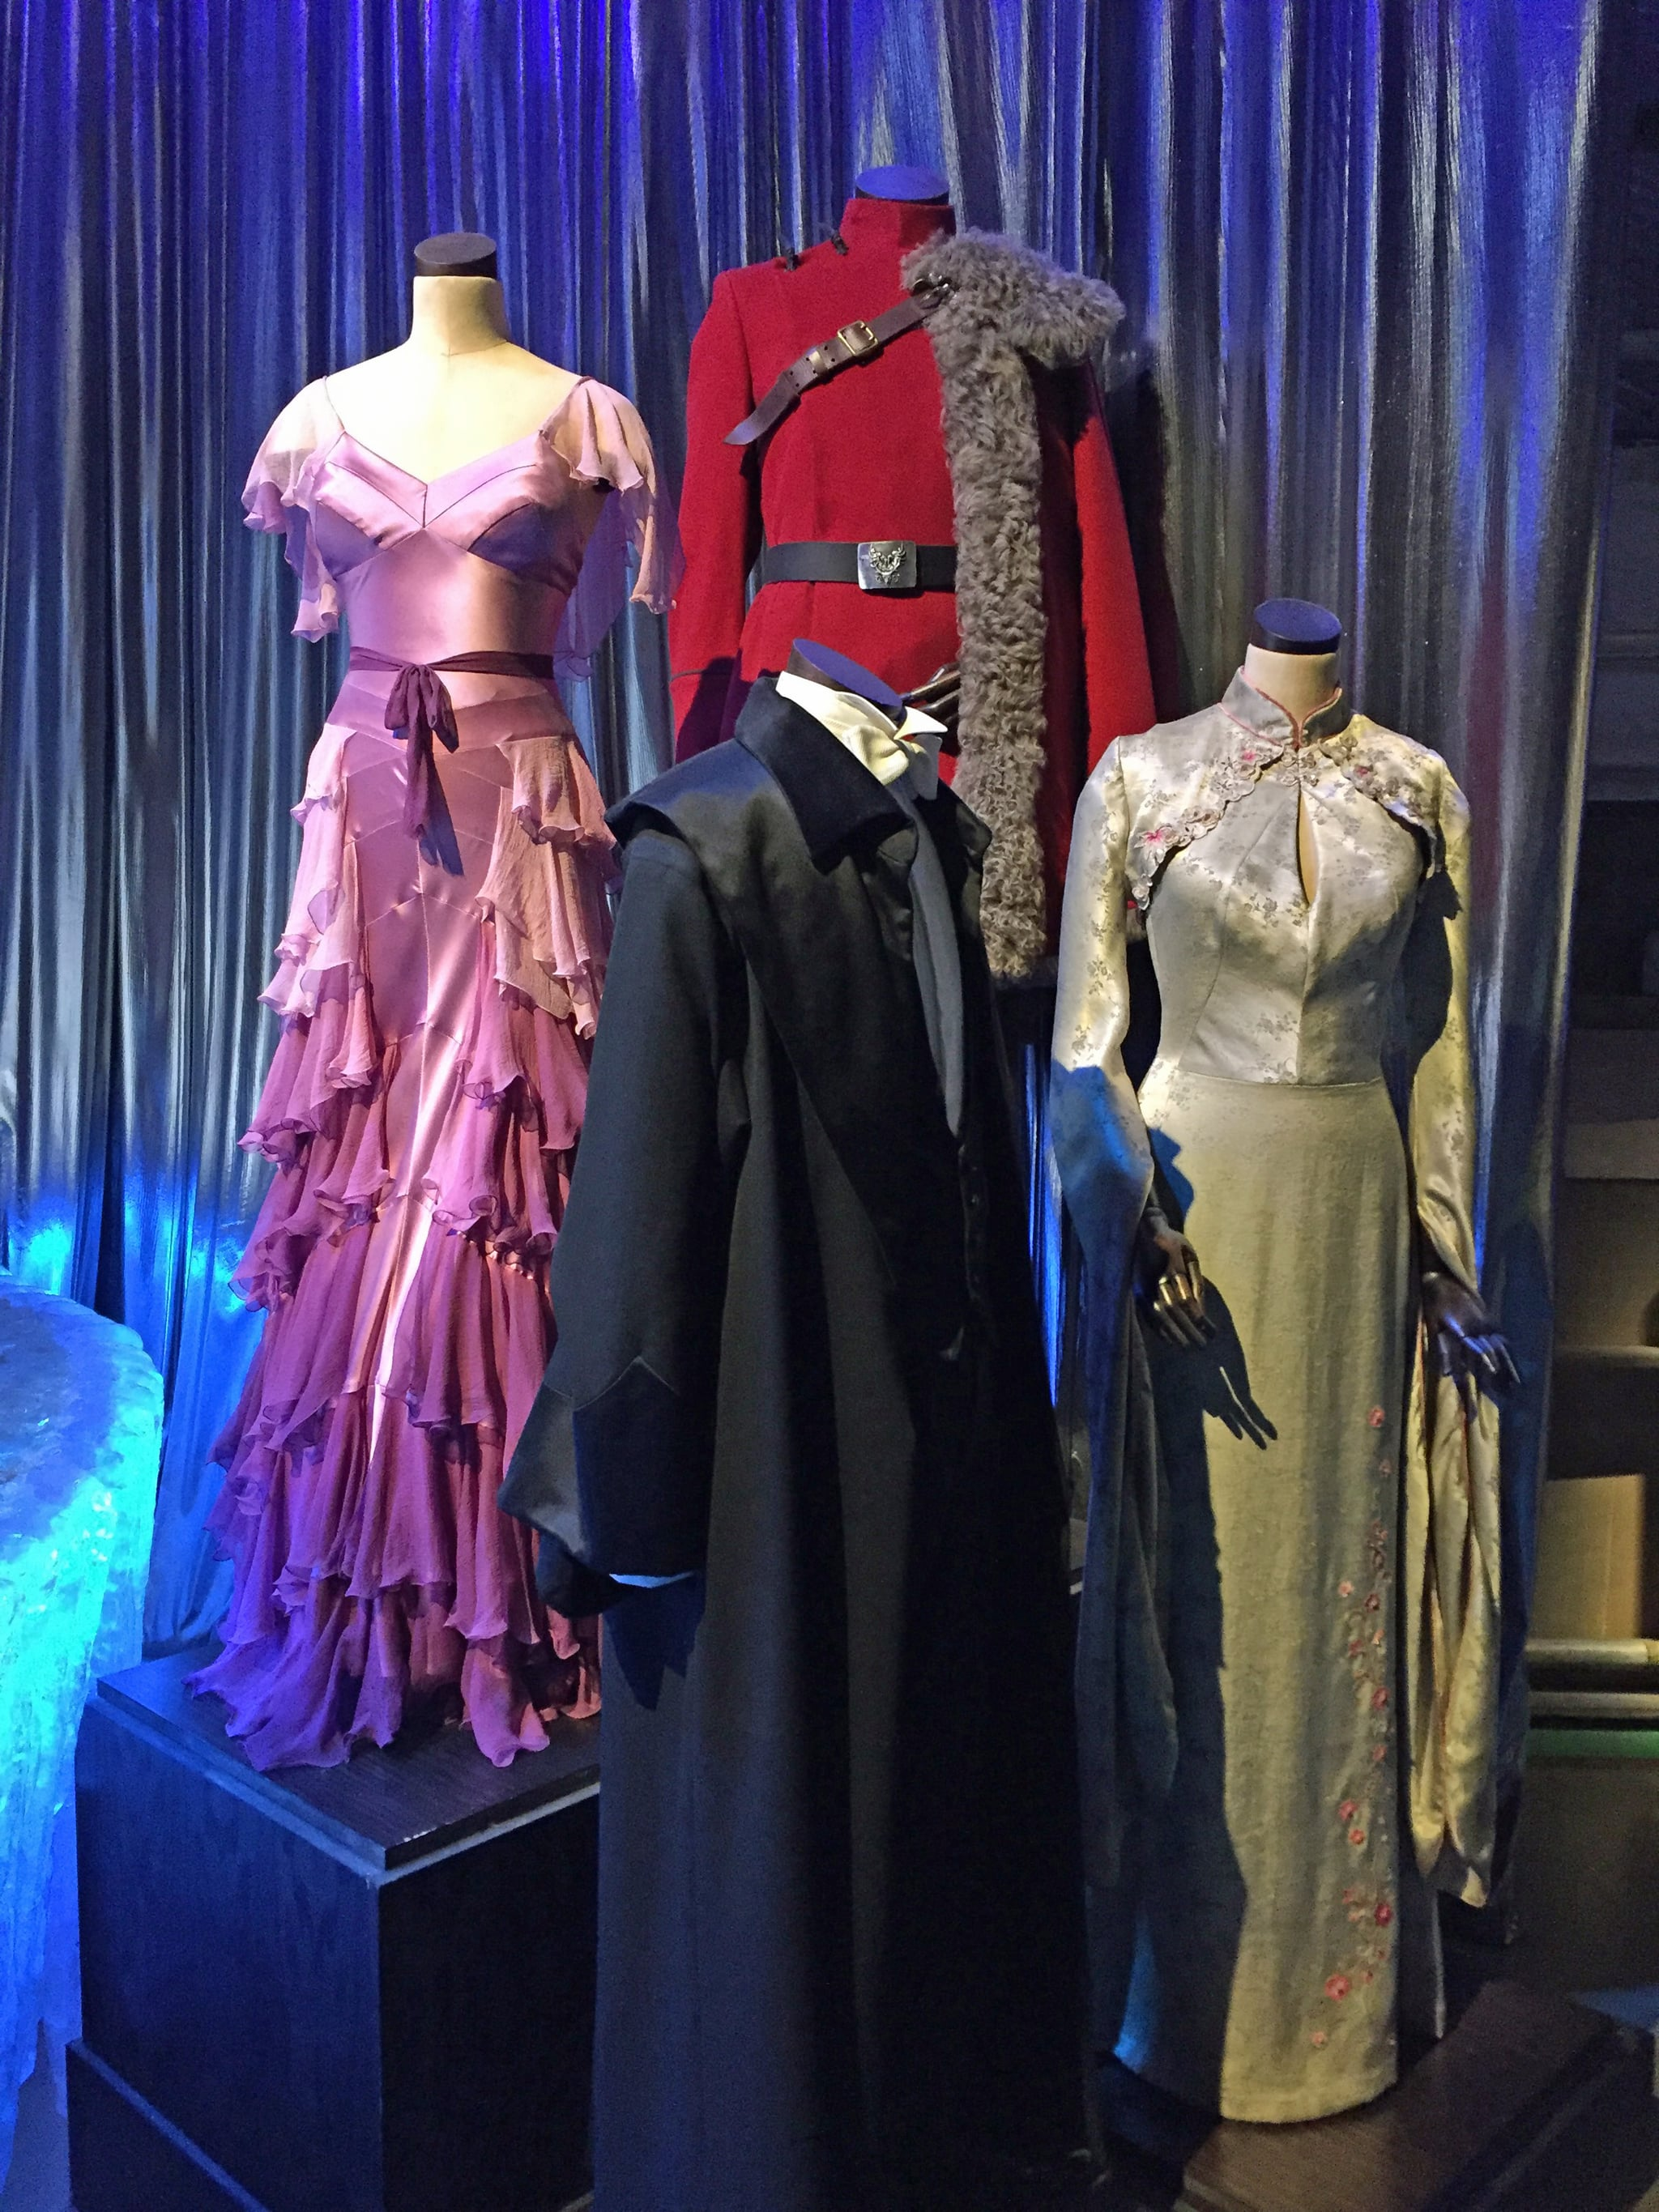 And, of course, the Yule Ball costumes.